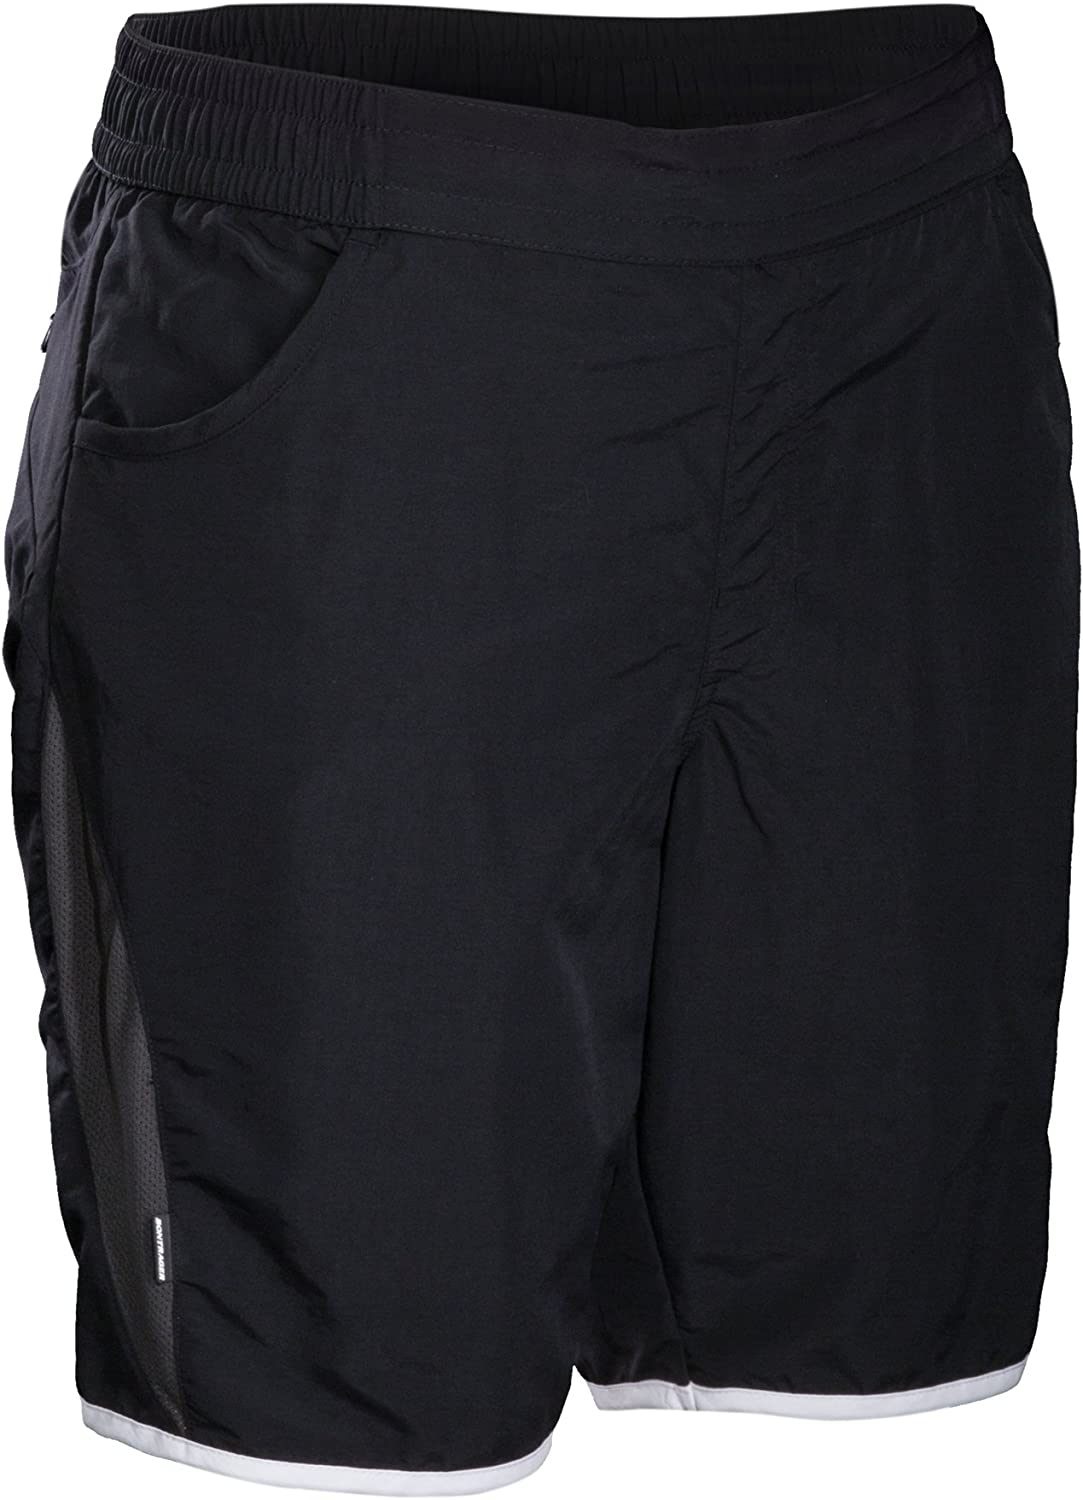 Bontrager Mens Dual Sport Baggy Cycling Shorts With Chamois Small S 6962-14